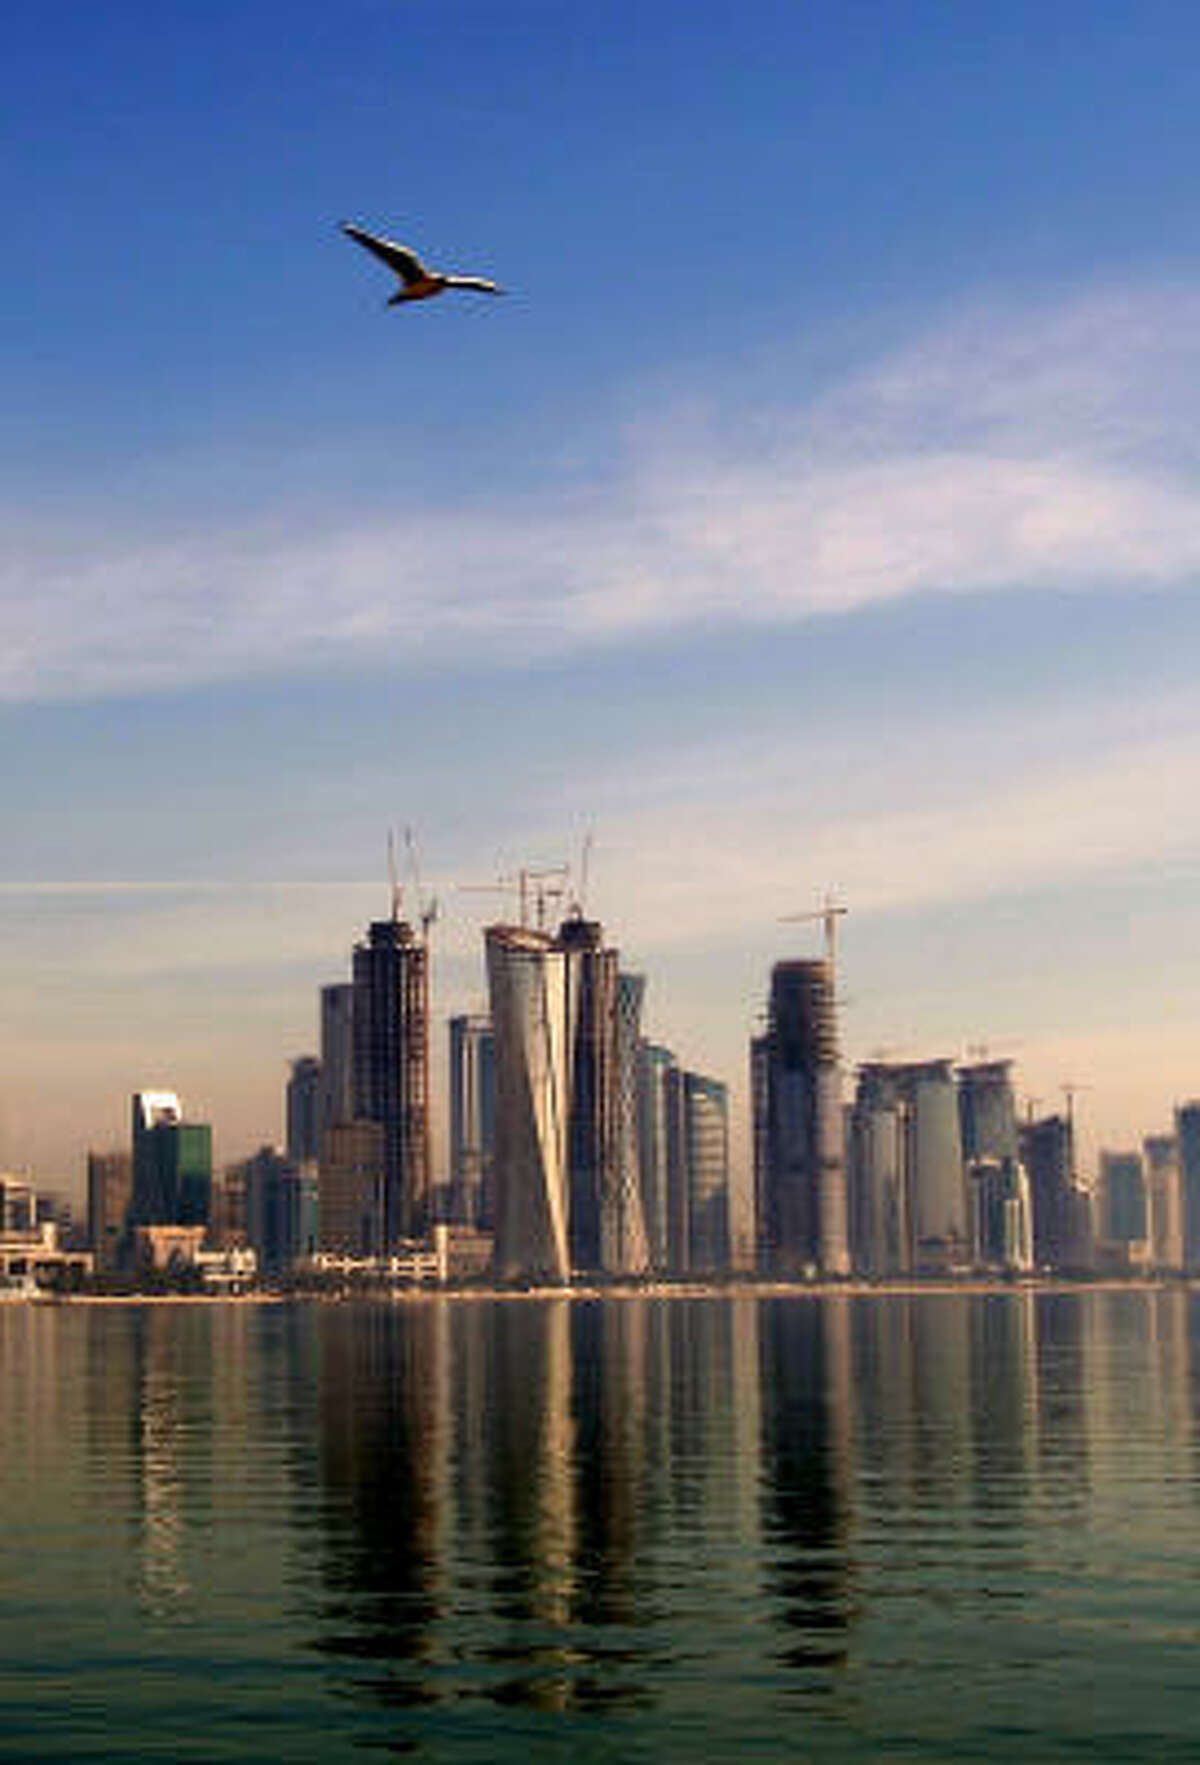 More than $100 billion in construction projects are under way in Doha, Qatar's capital.